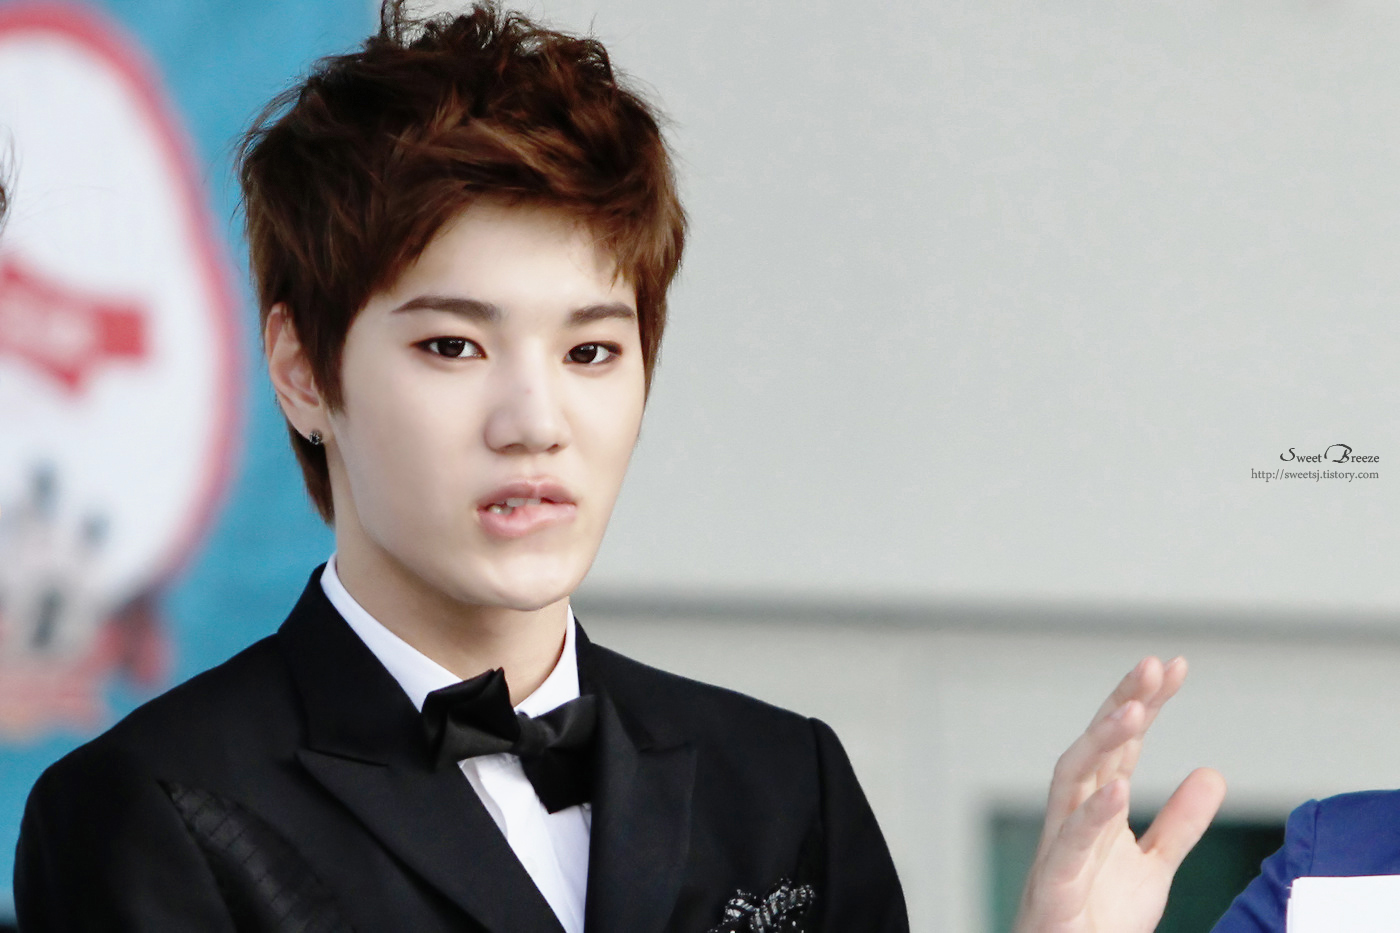 Infinite Sungjong, Cute Charm 39;Boo39; : News : KpopStarz